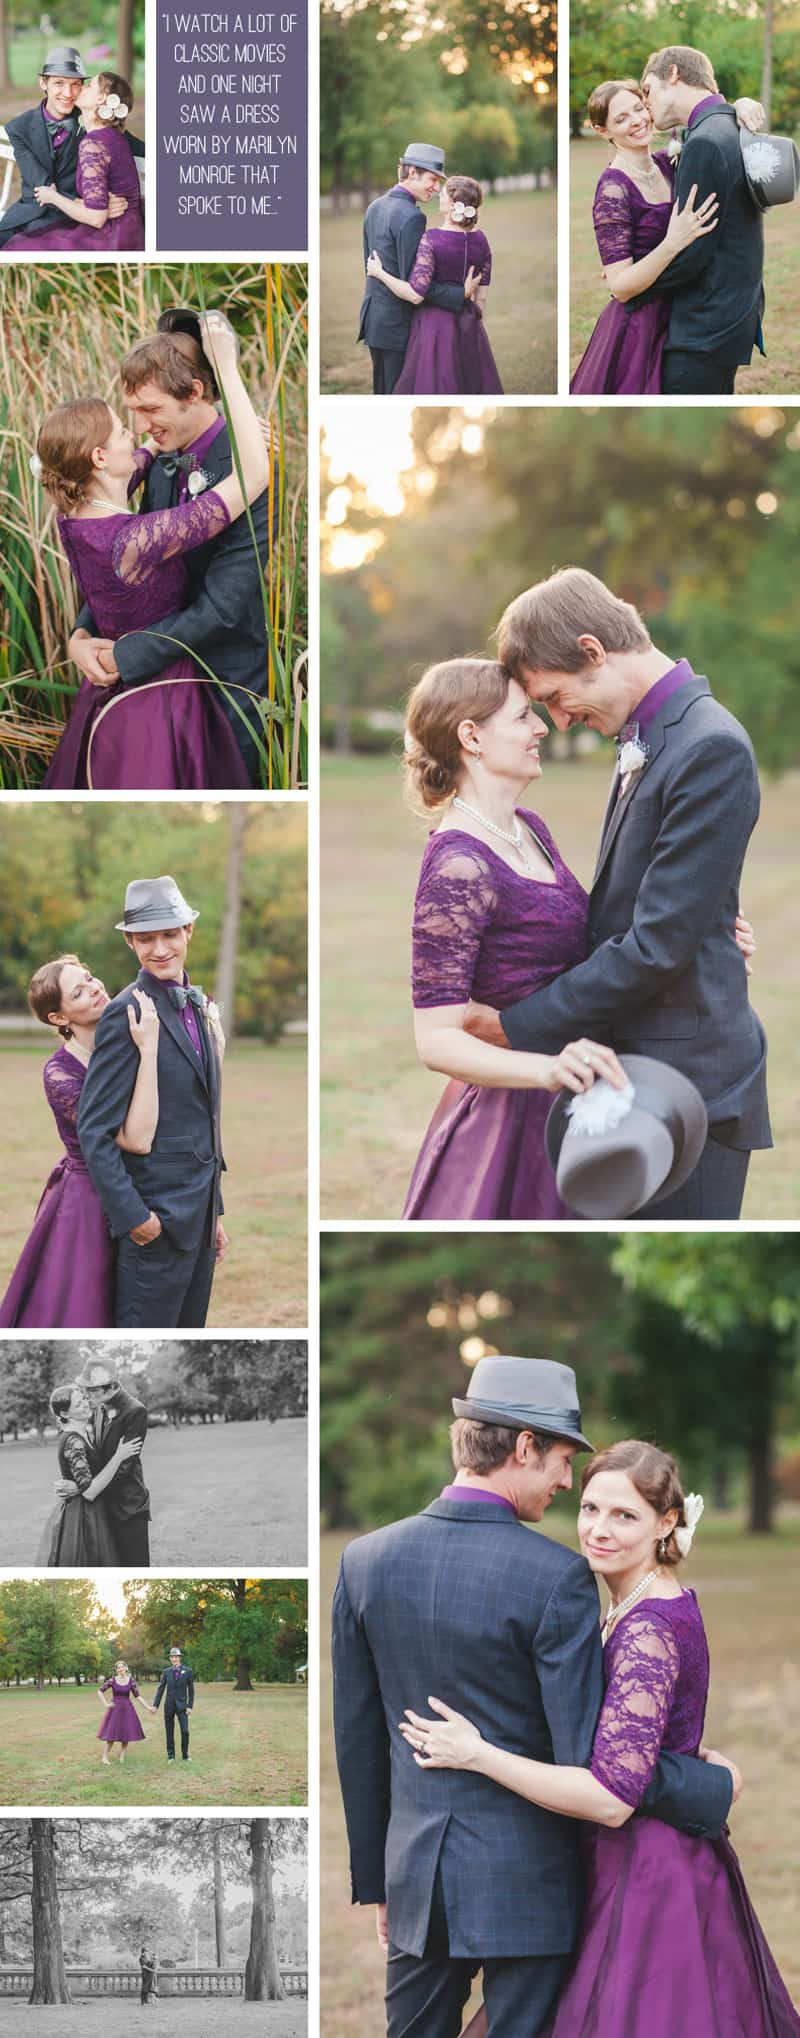 A Purple Wedding Dress For a Backyard Wedding 6